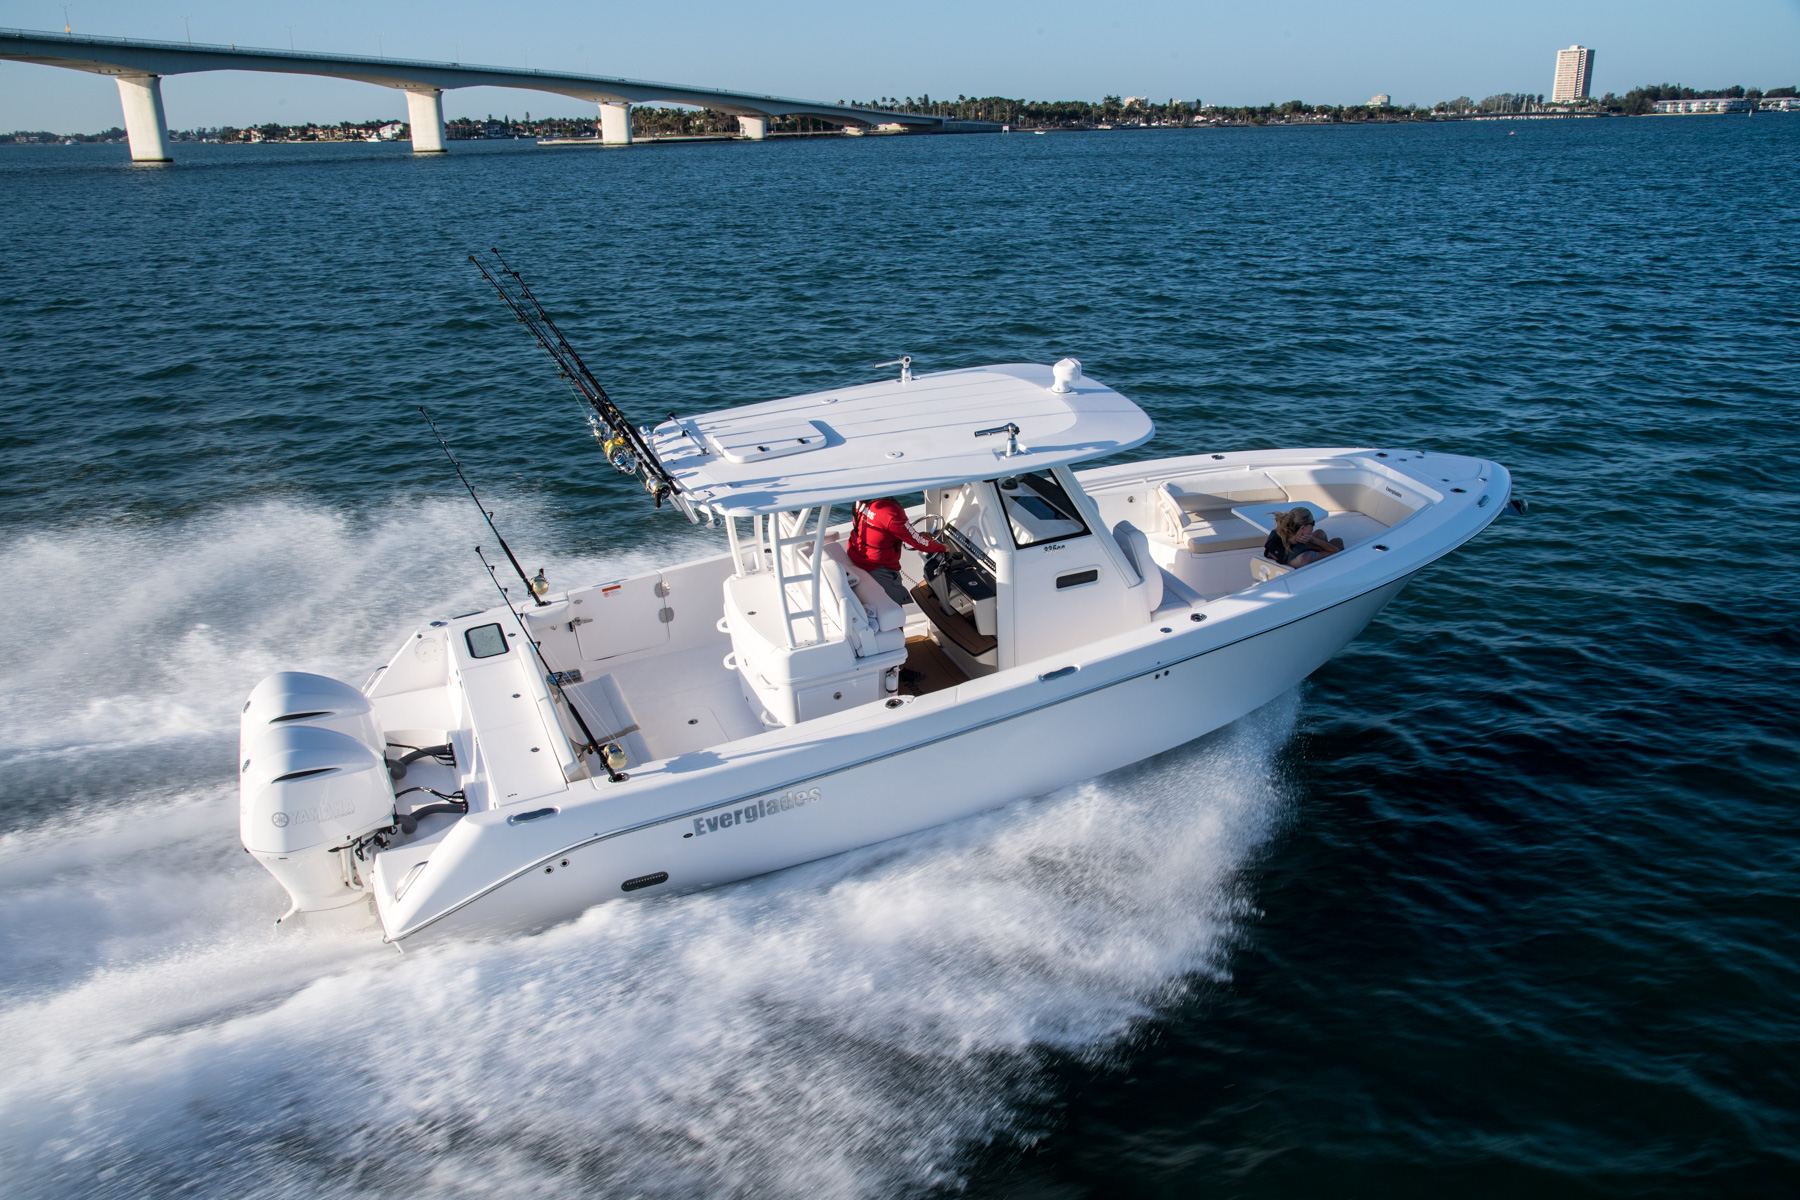 30 Foot Boat Guide Finding The Best Boat For You And Your